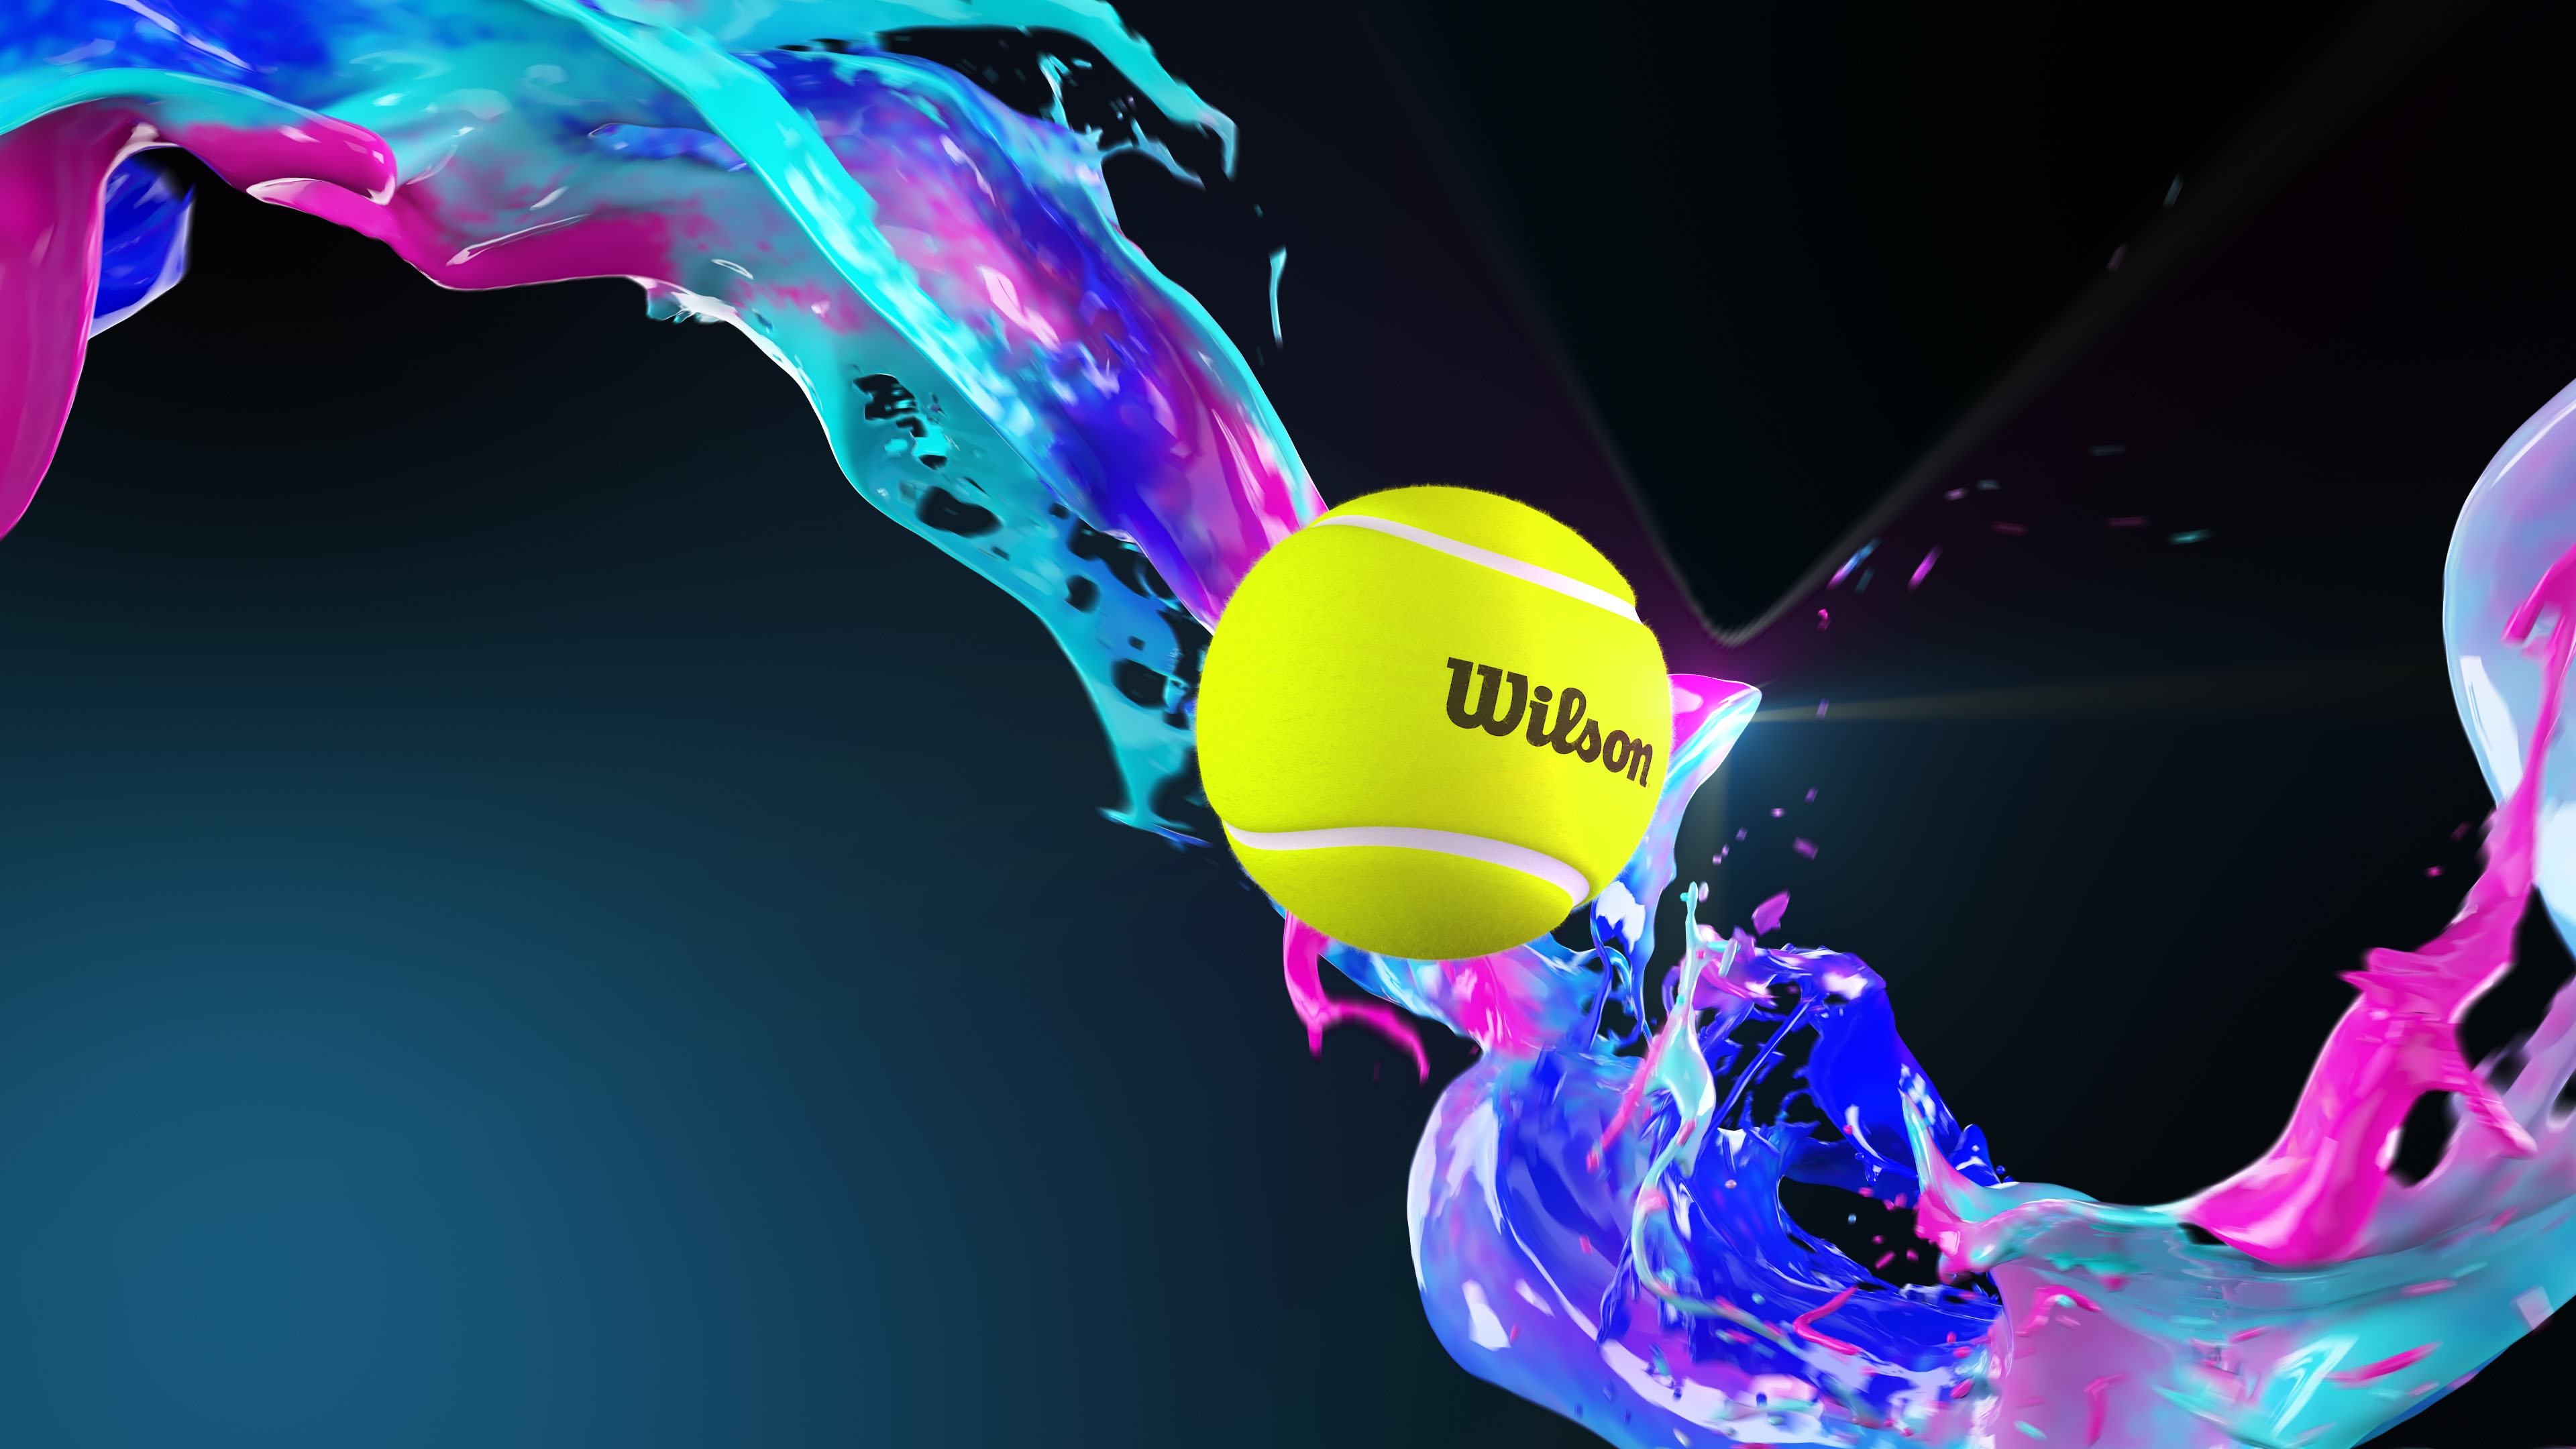 Wilson tennis ball 3D visualization with fluid effects on blue background